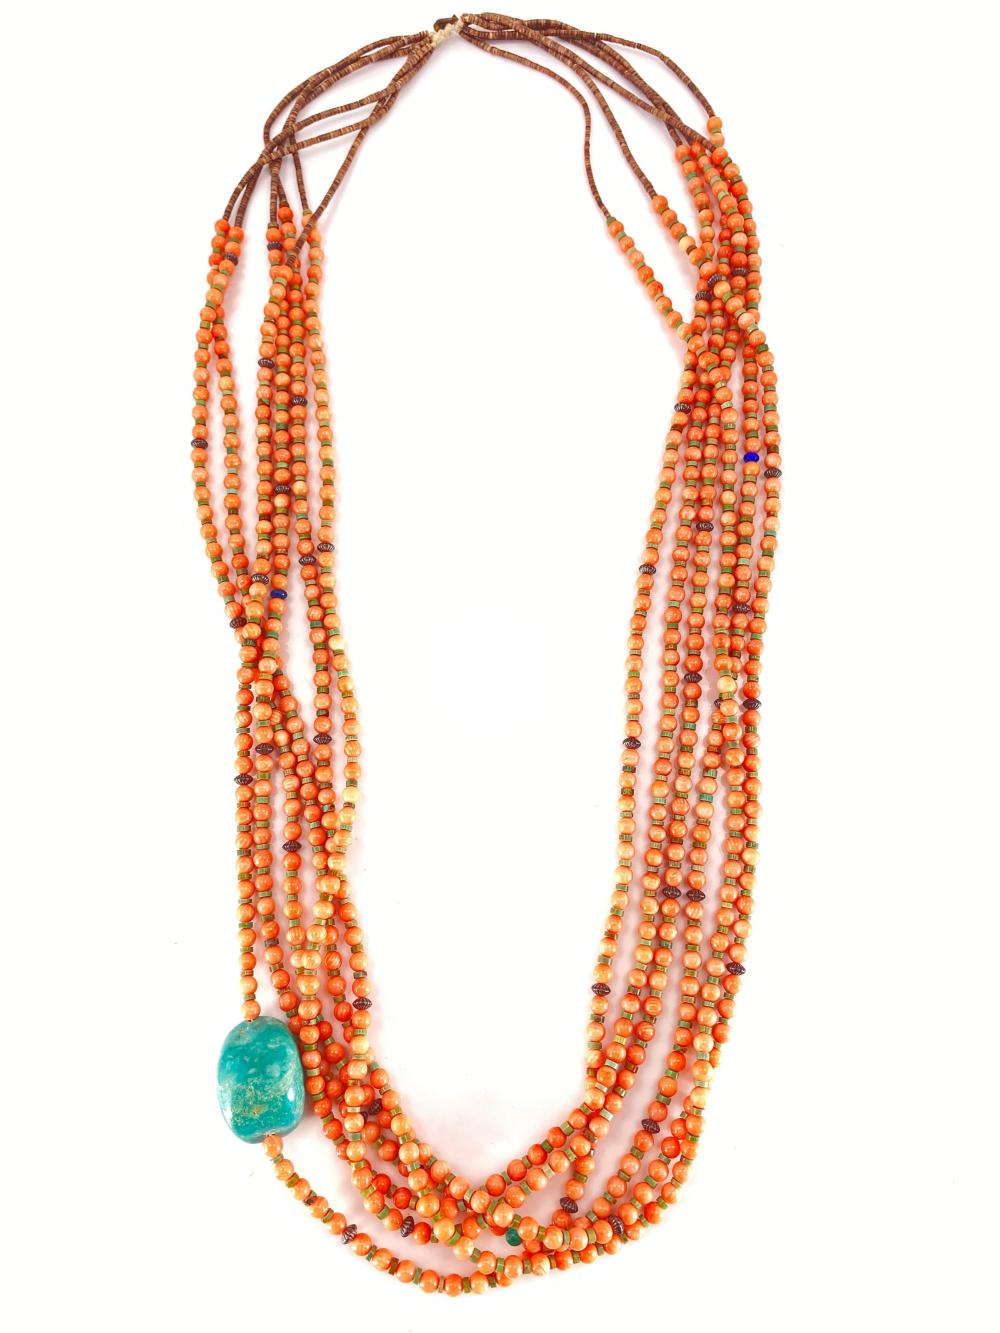 Native American Pink Coral & Heishi Beaded Necklace w/ Turquoise